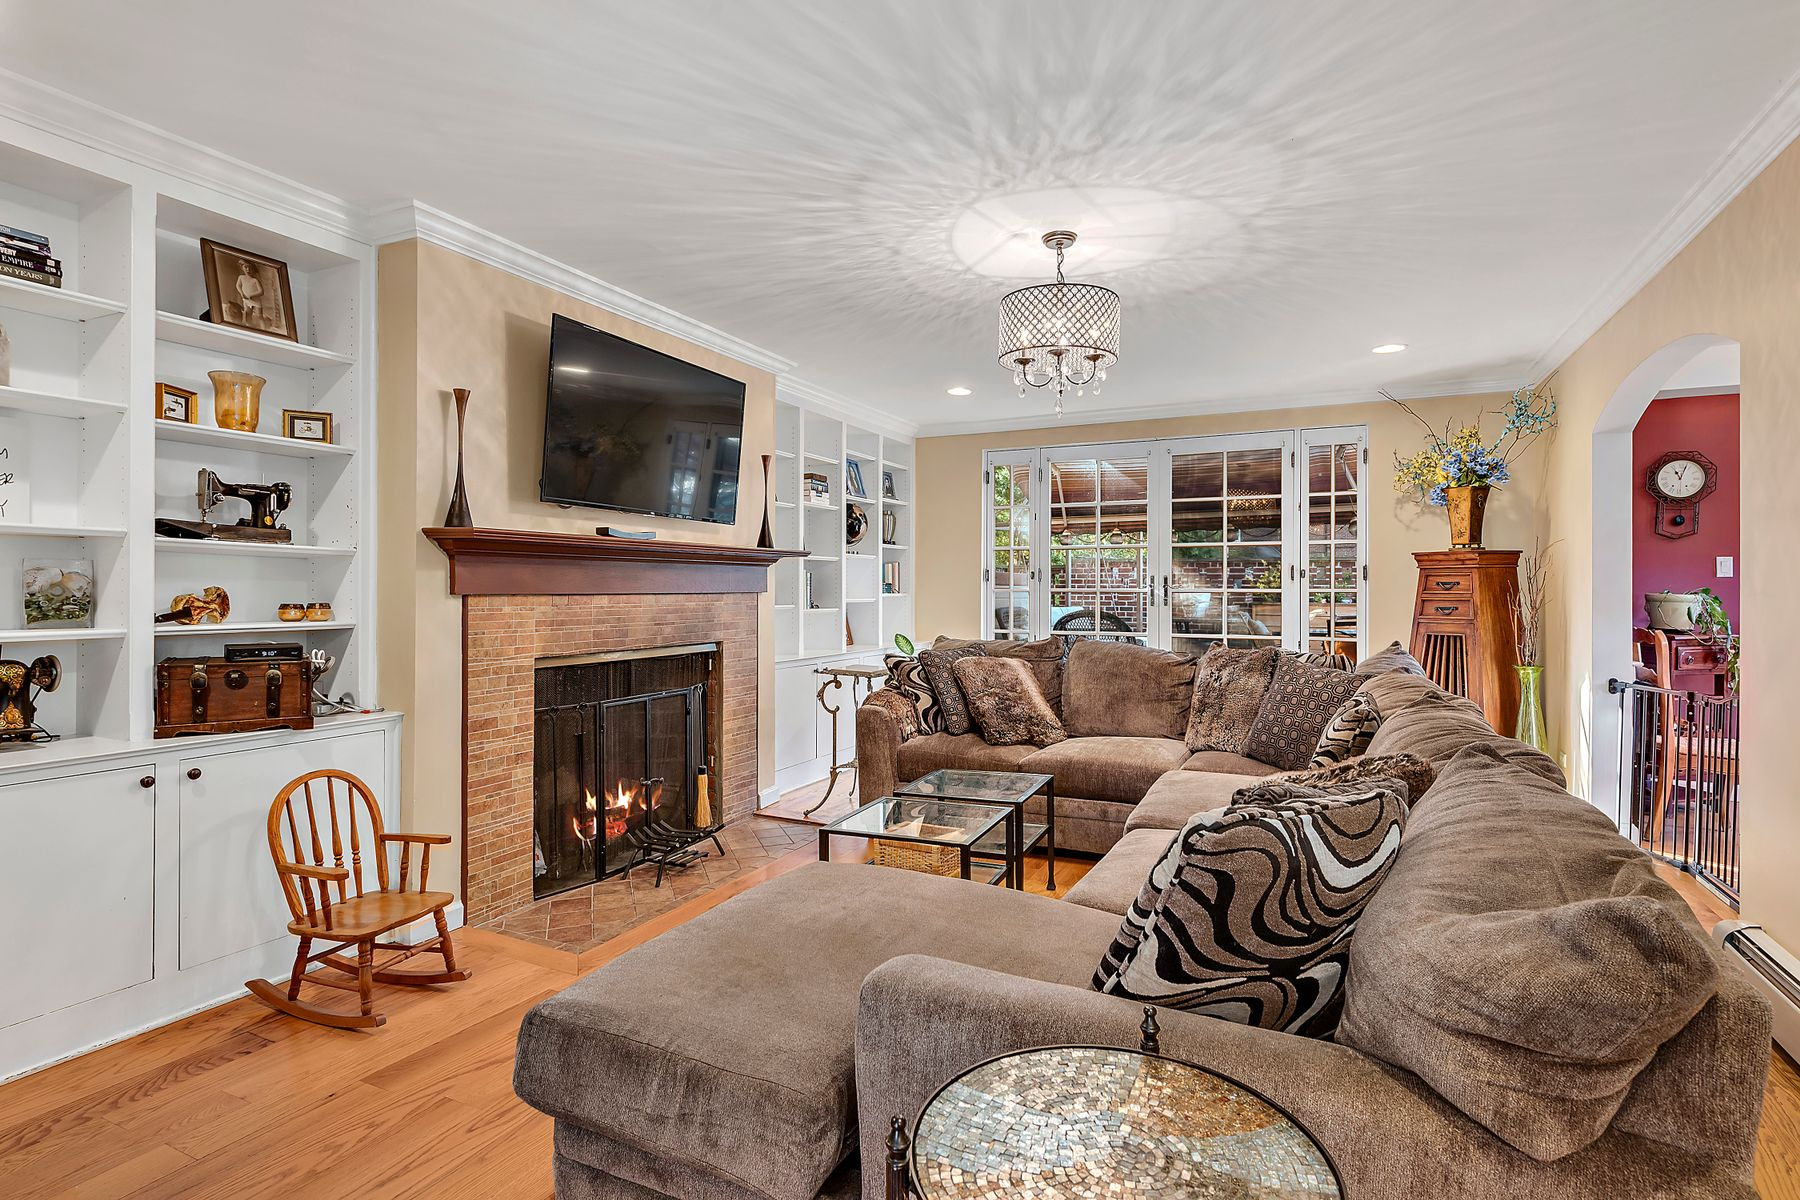 Single Family Homes for Sale at 4601 Henry Hudson Parkway, A-15 4601 Henry Hudson Parkway APT #A-15 Bronx, New York 10471 United States